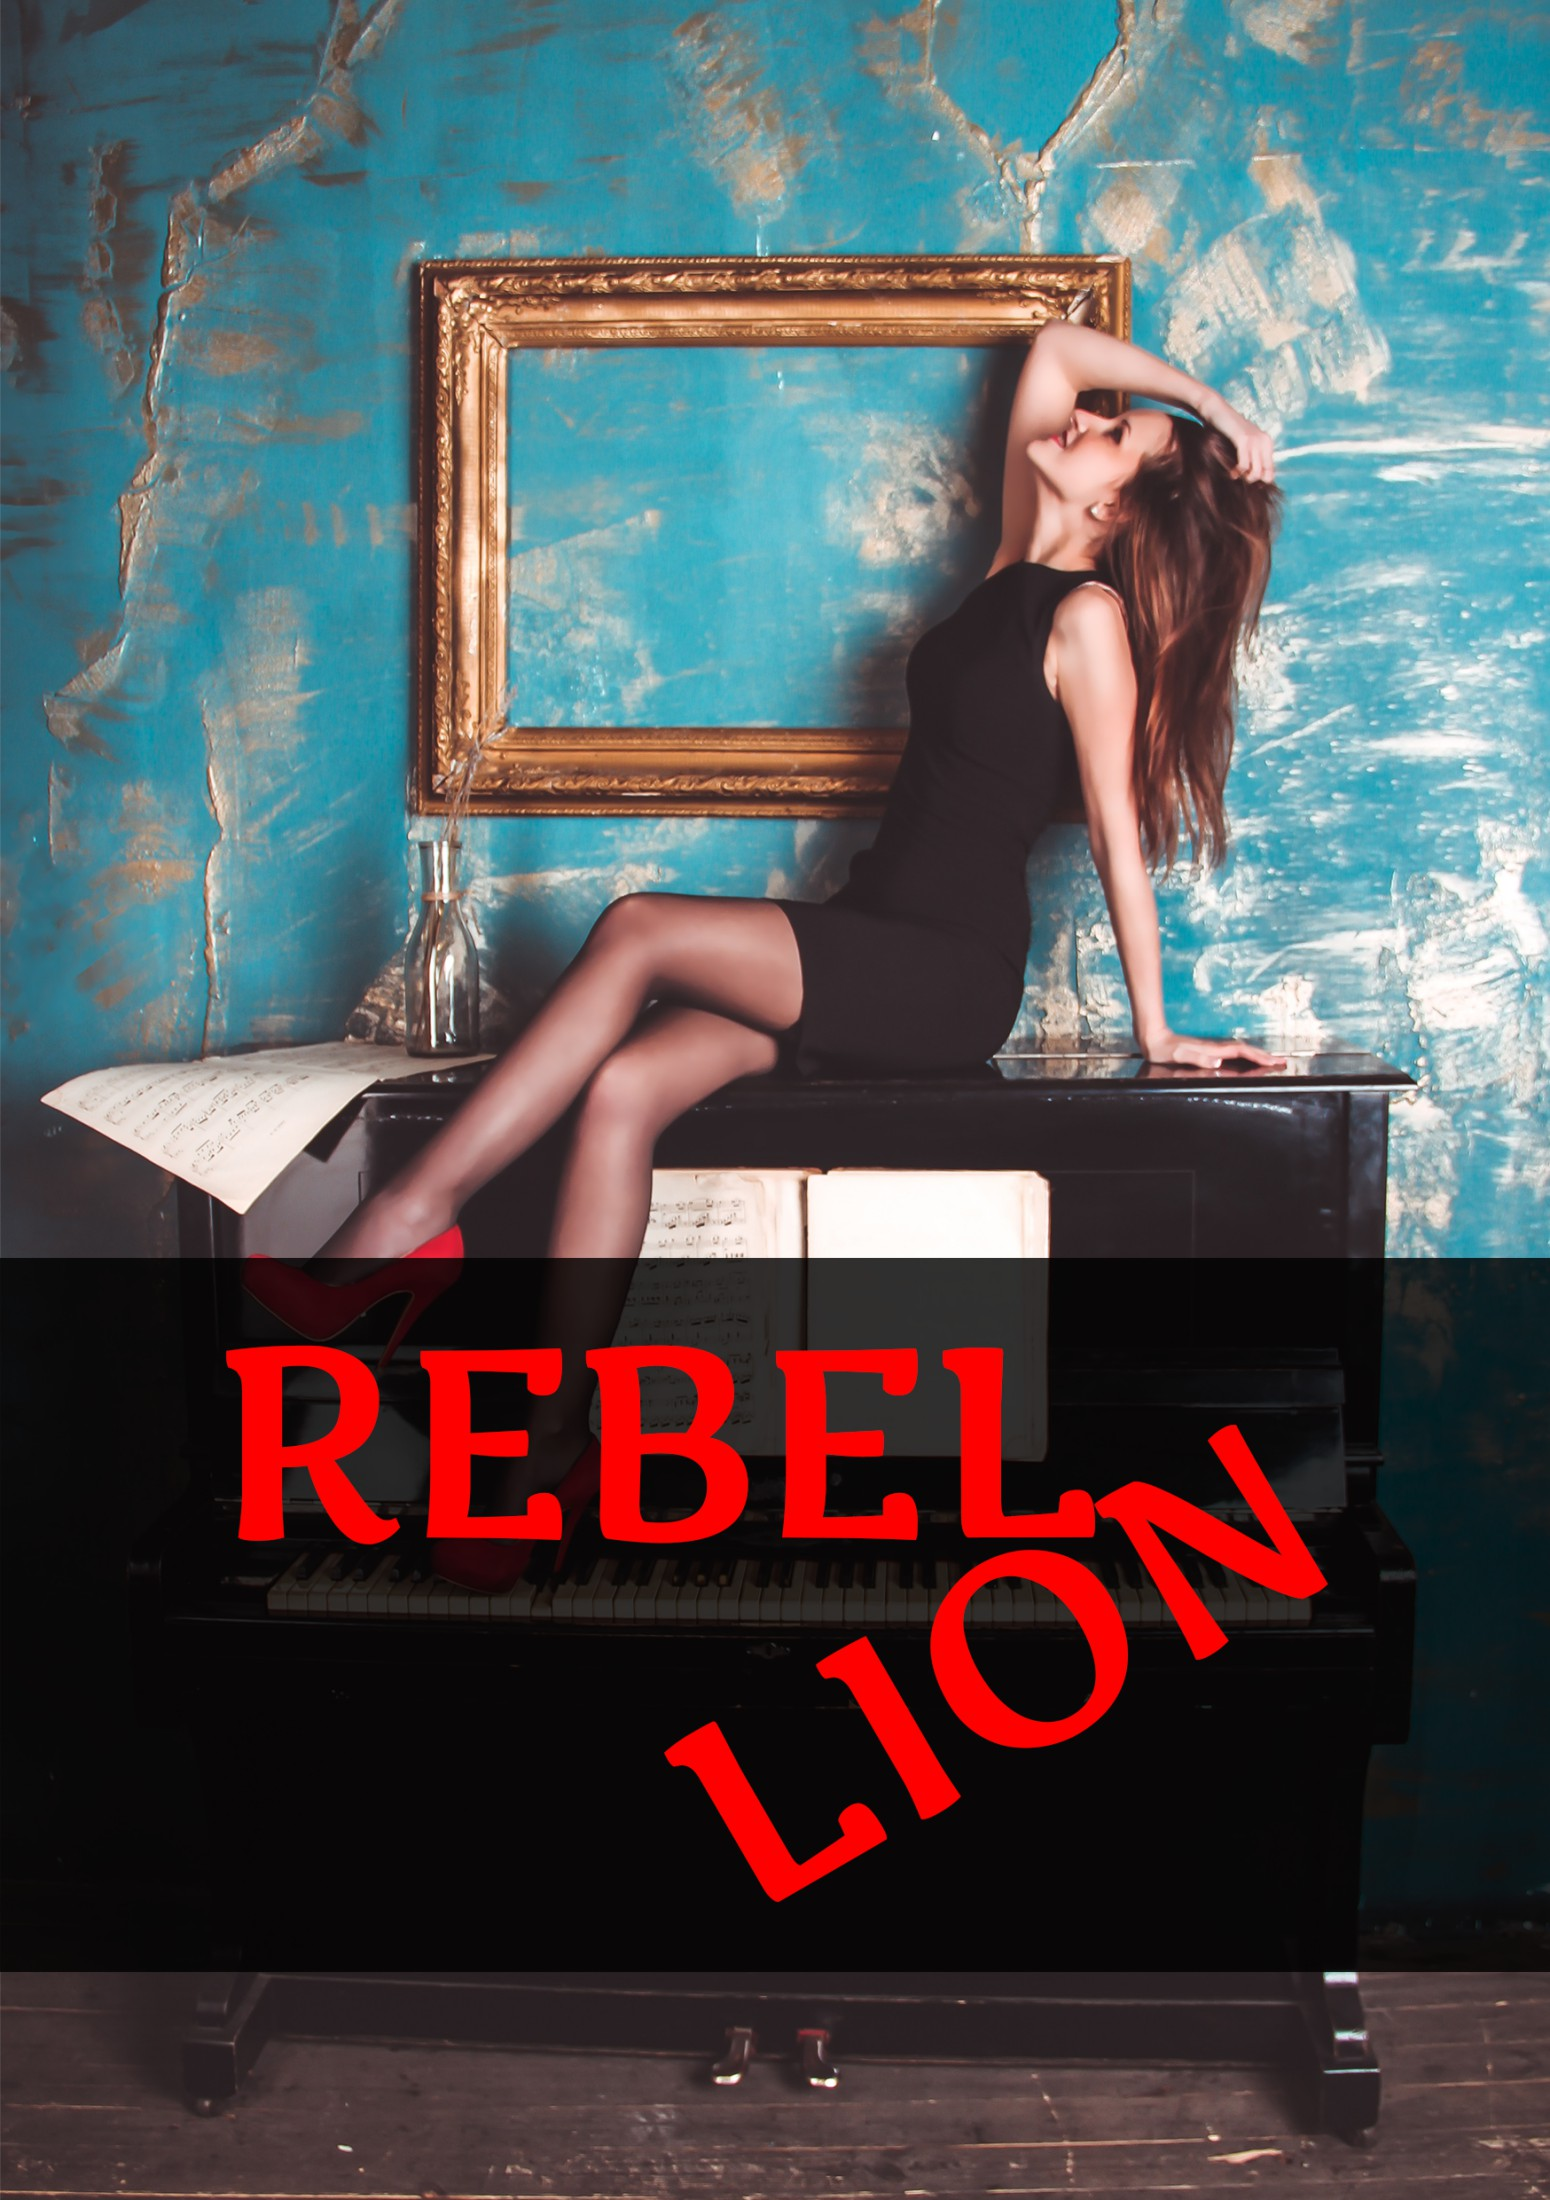 Rebel-Lion